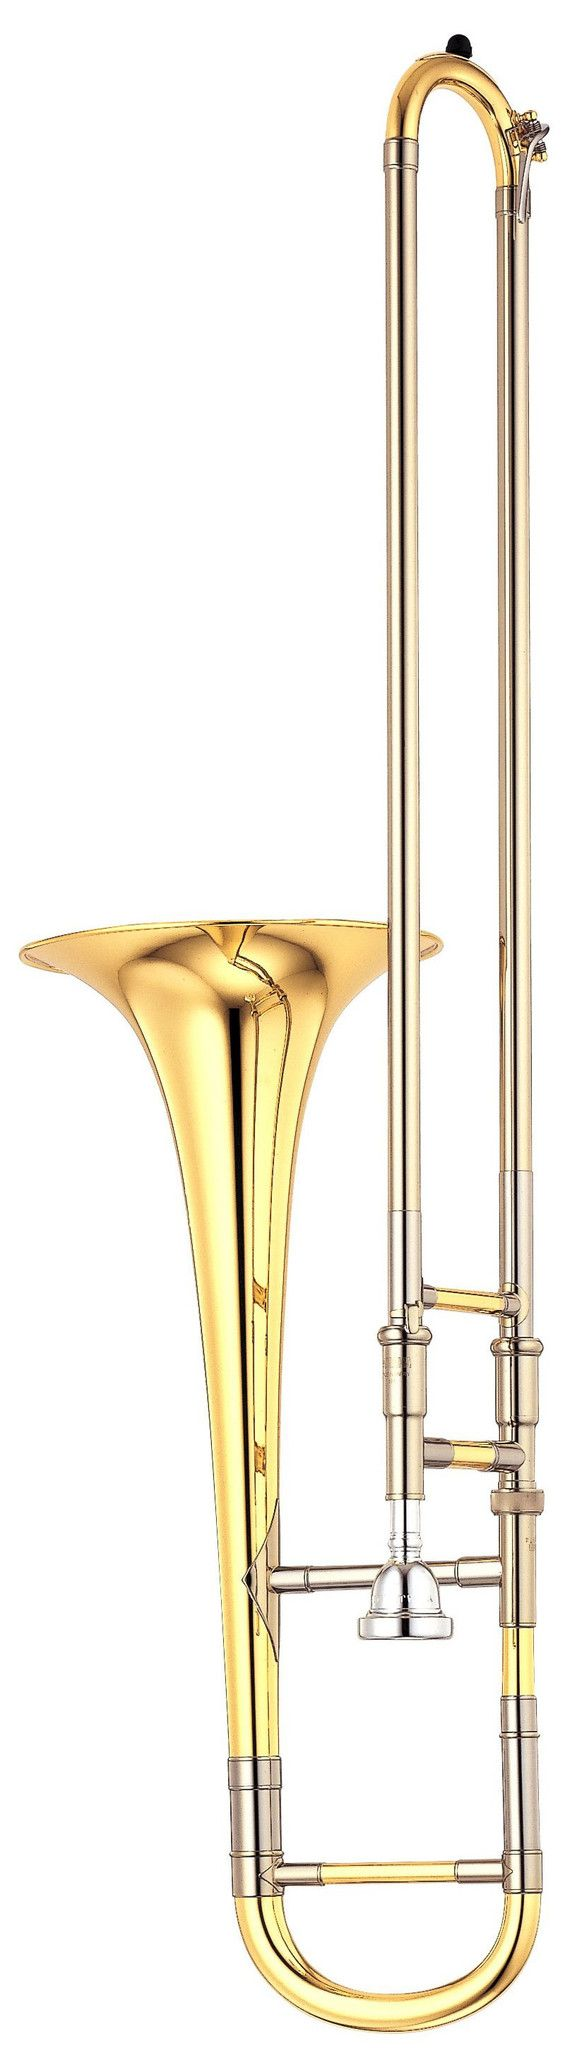 In creating the new YSL-871 alto trombone, Yamaha has effectively combined its advanced wind instrument technology, nurtured in the making of the Xeno series, with traditional craftsmanship in a basic